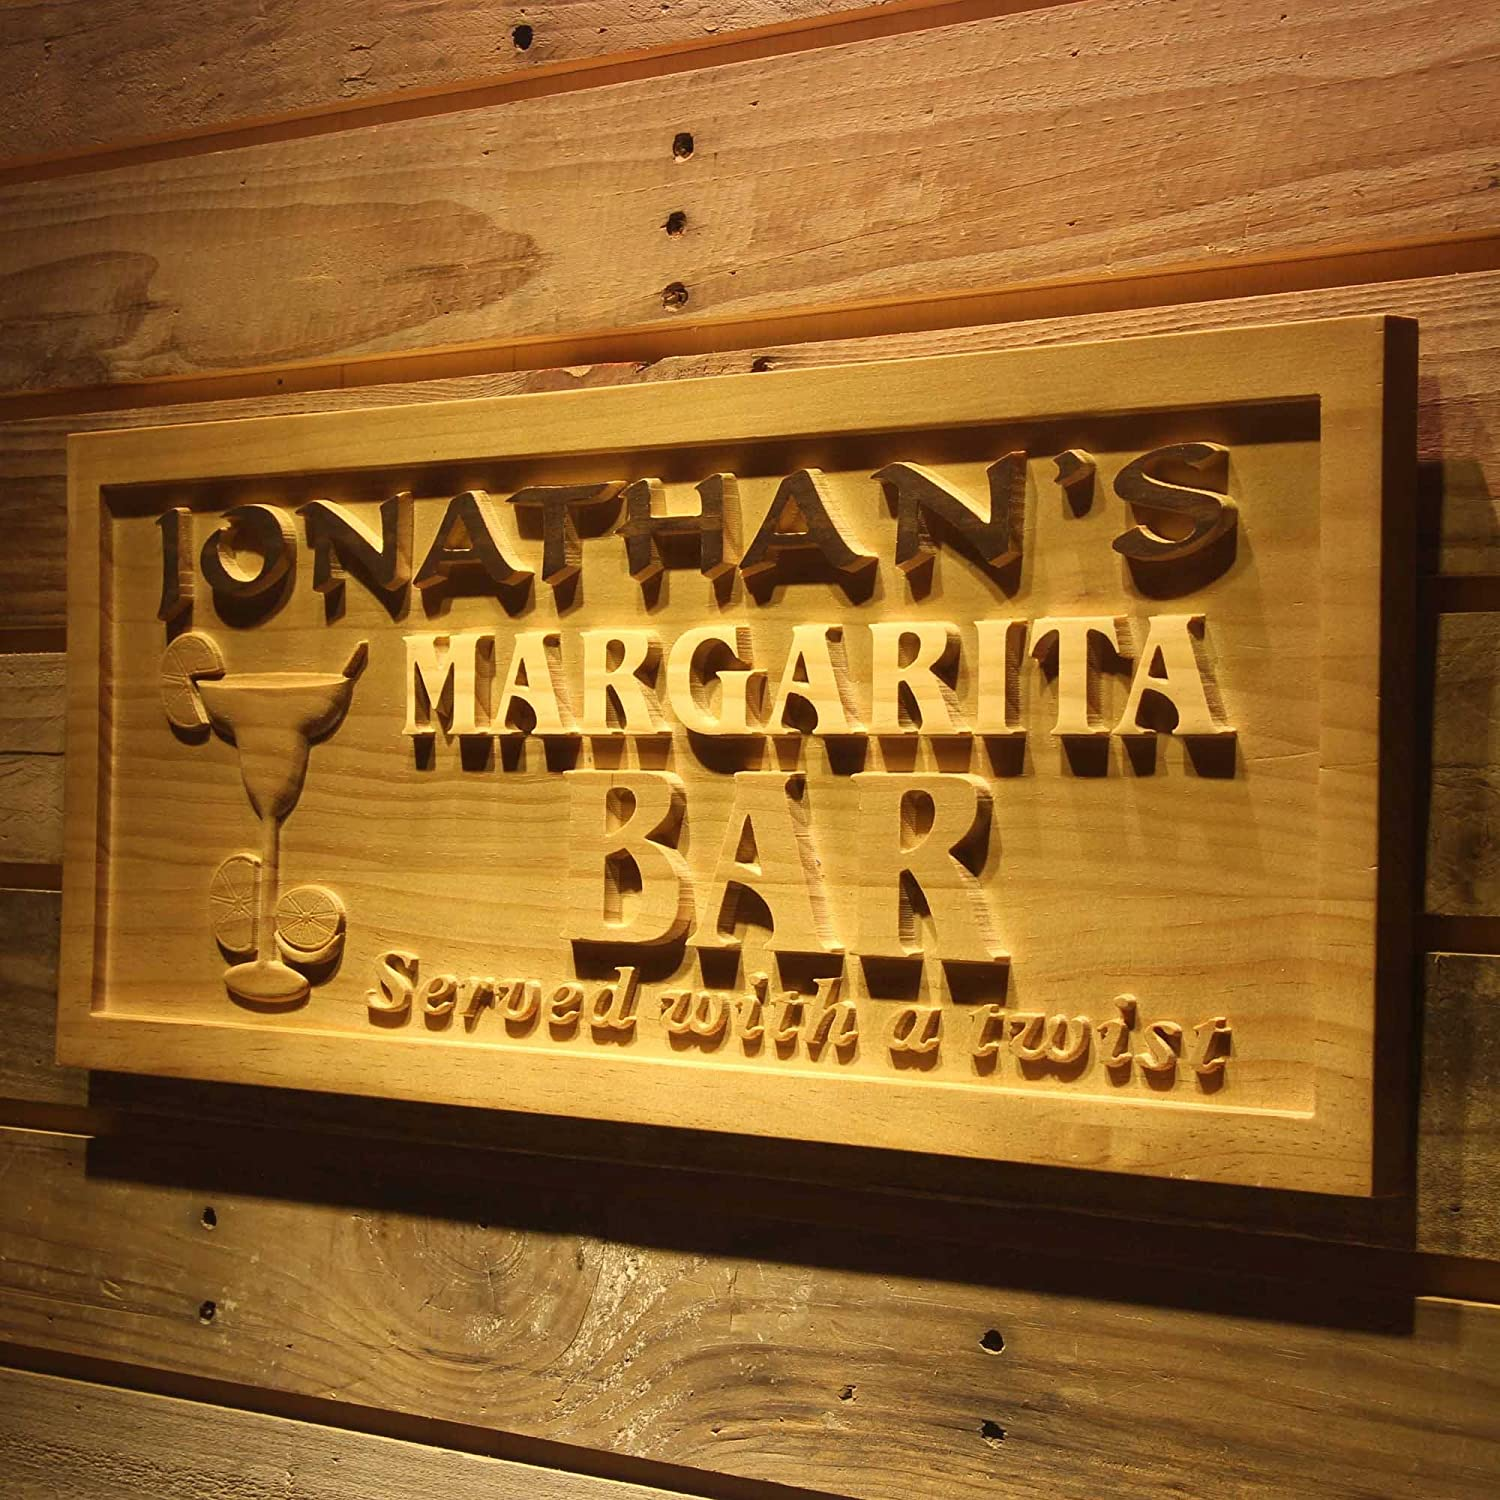 Wpa0203 Name Personalized Margarita Bar Wine Club Wood Engraved Wooden Sign - Standard 23  x 9.25